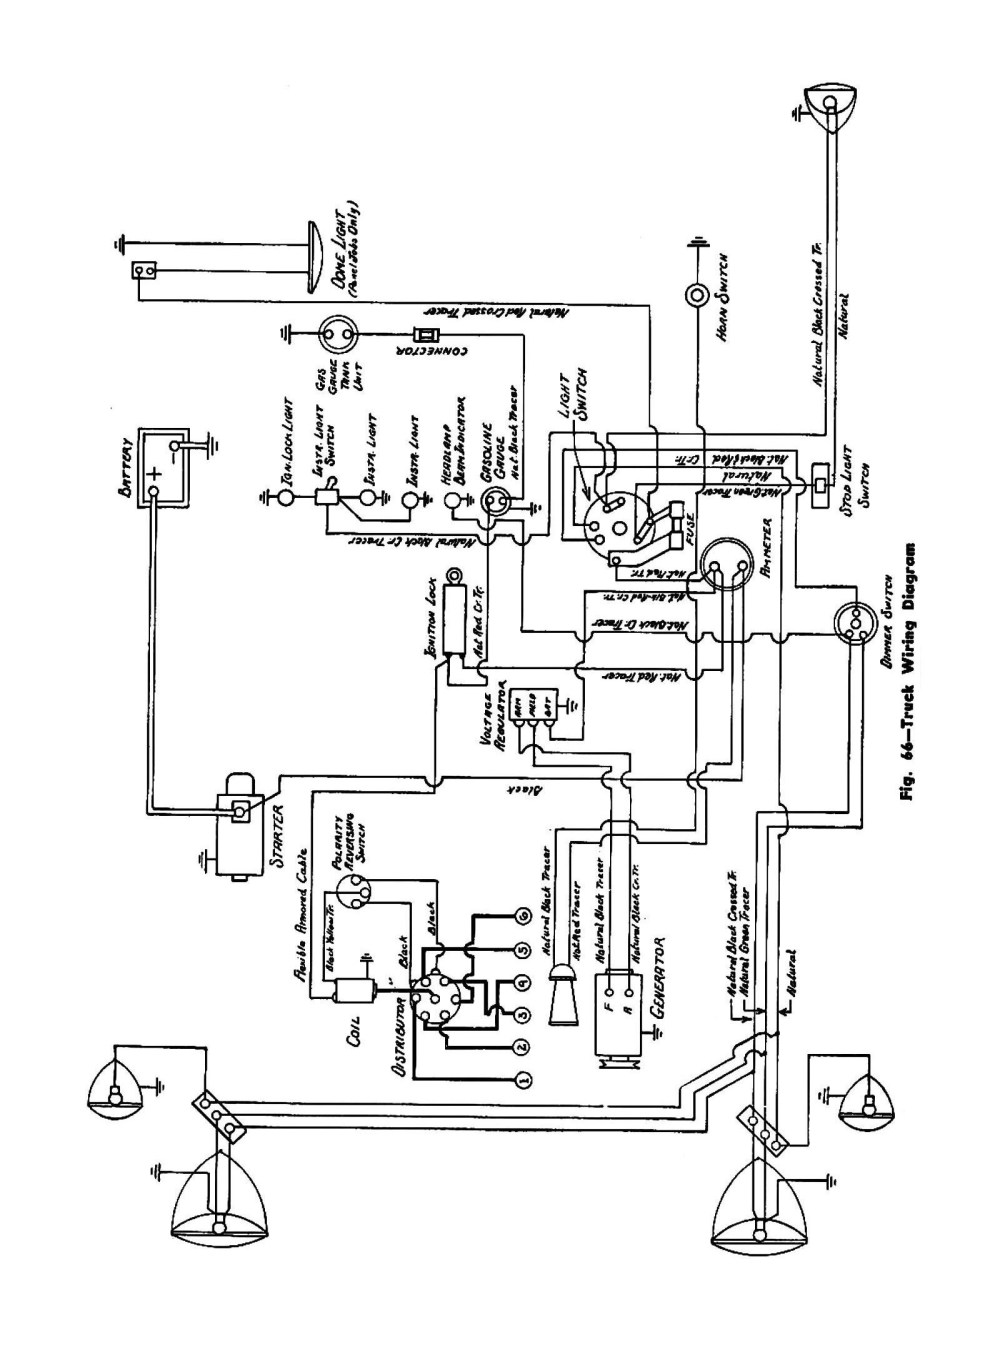 medium resolution of 1998 international truck wiring diagram